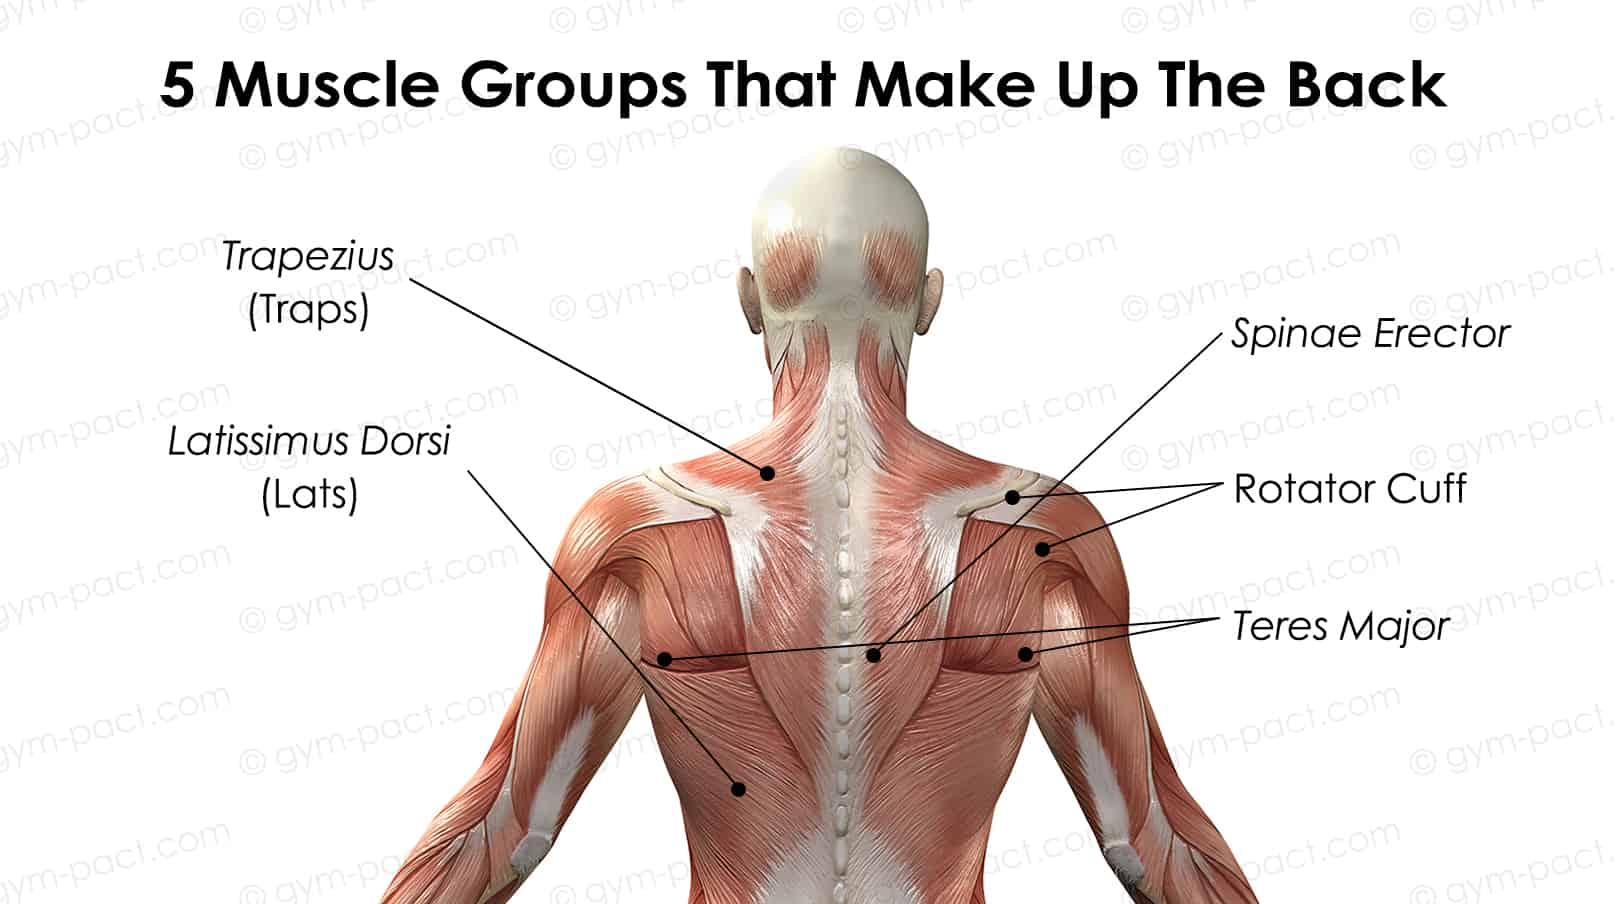 5 muscle groups that make up the back